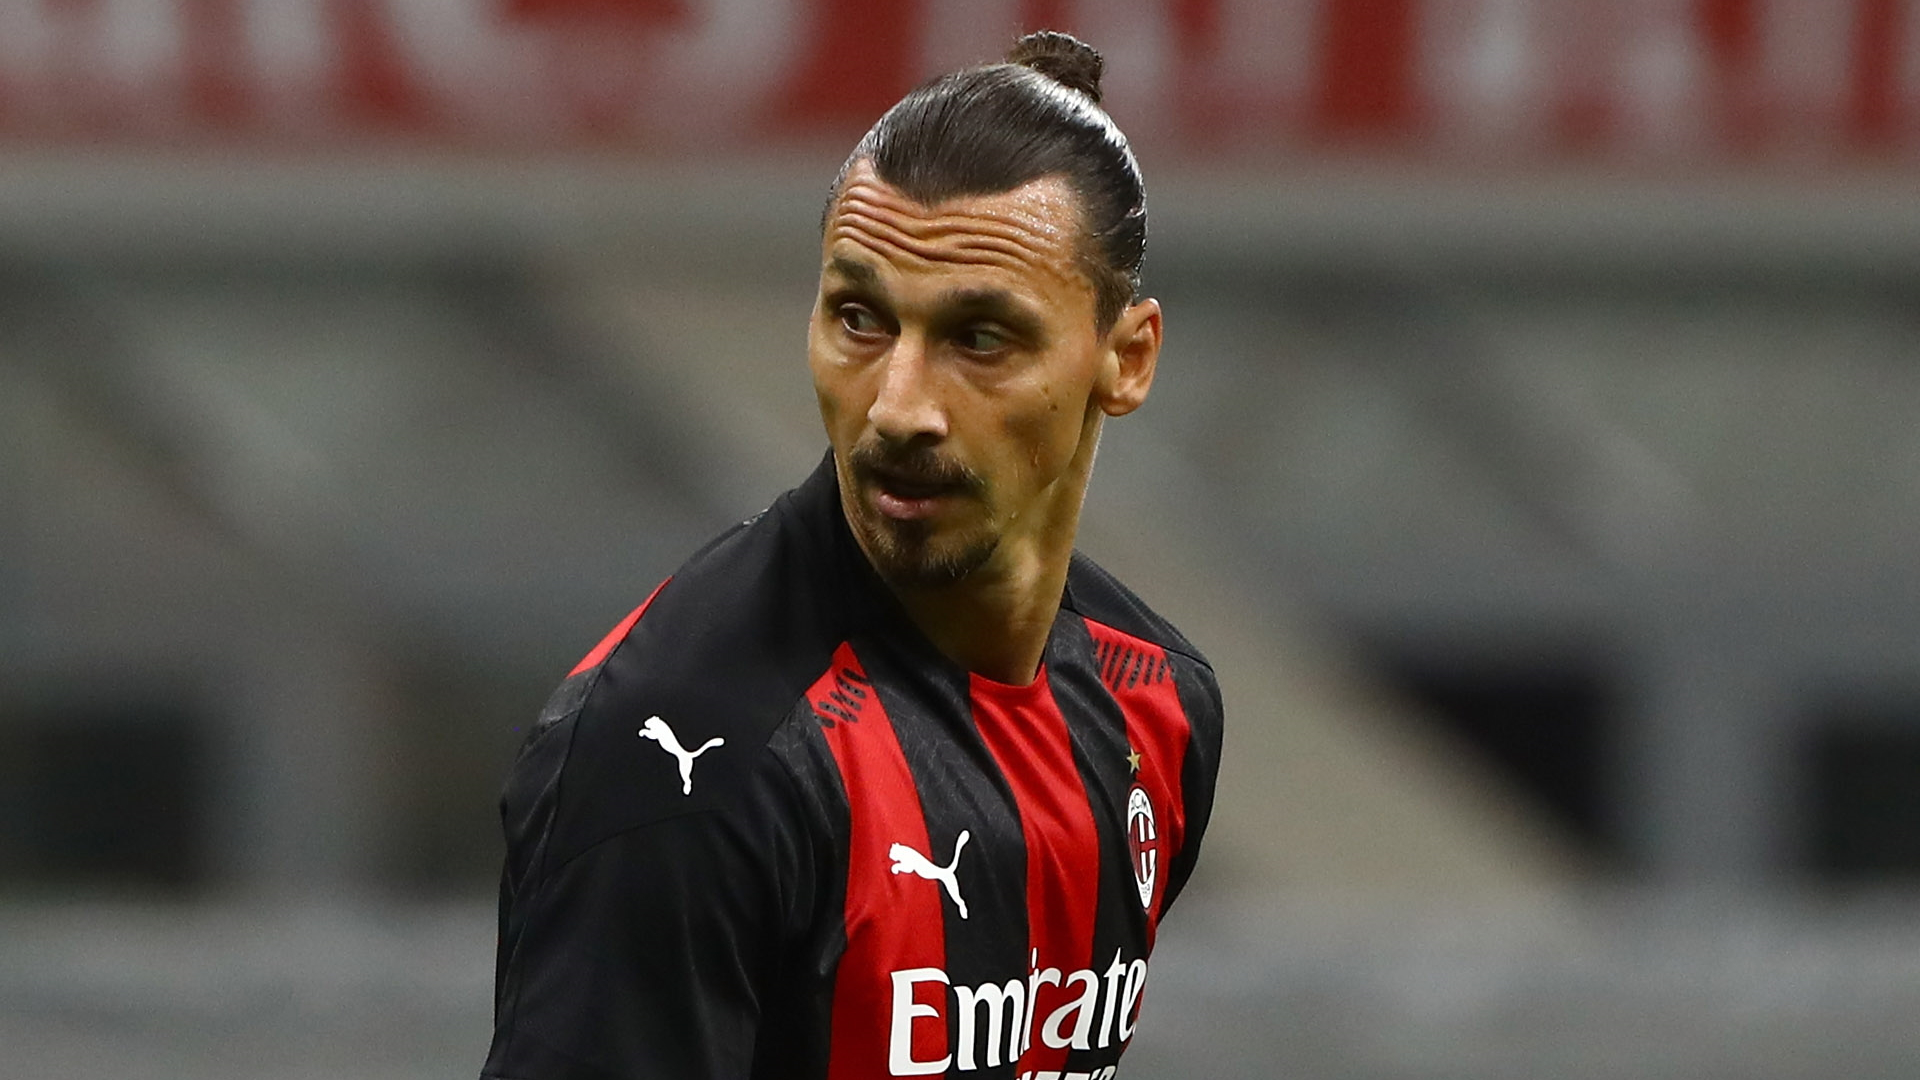 'Ibrahimovic will play derby with a cigarette in his mouth' - AC Milan striker tipped to shine against Inter by Vieri